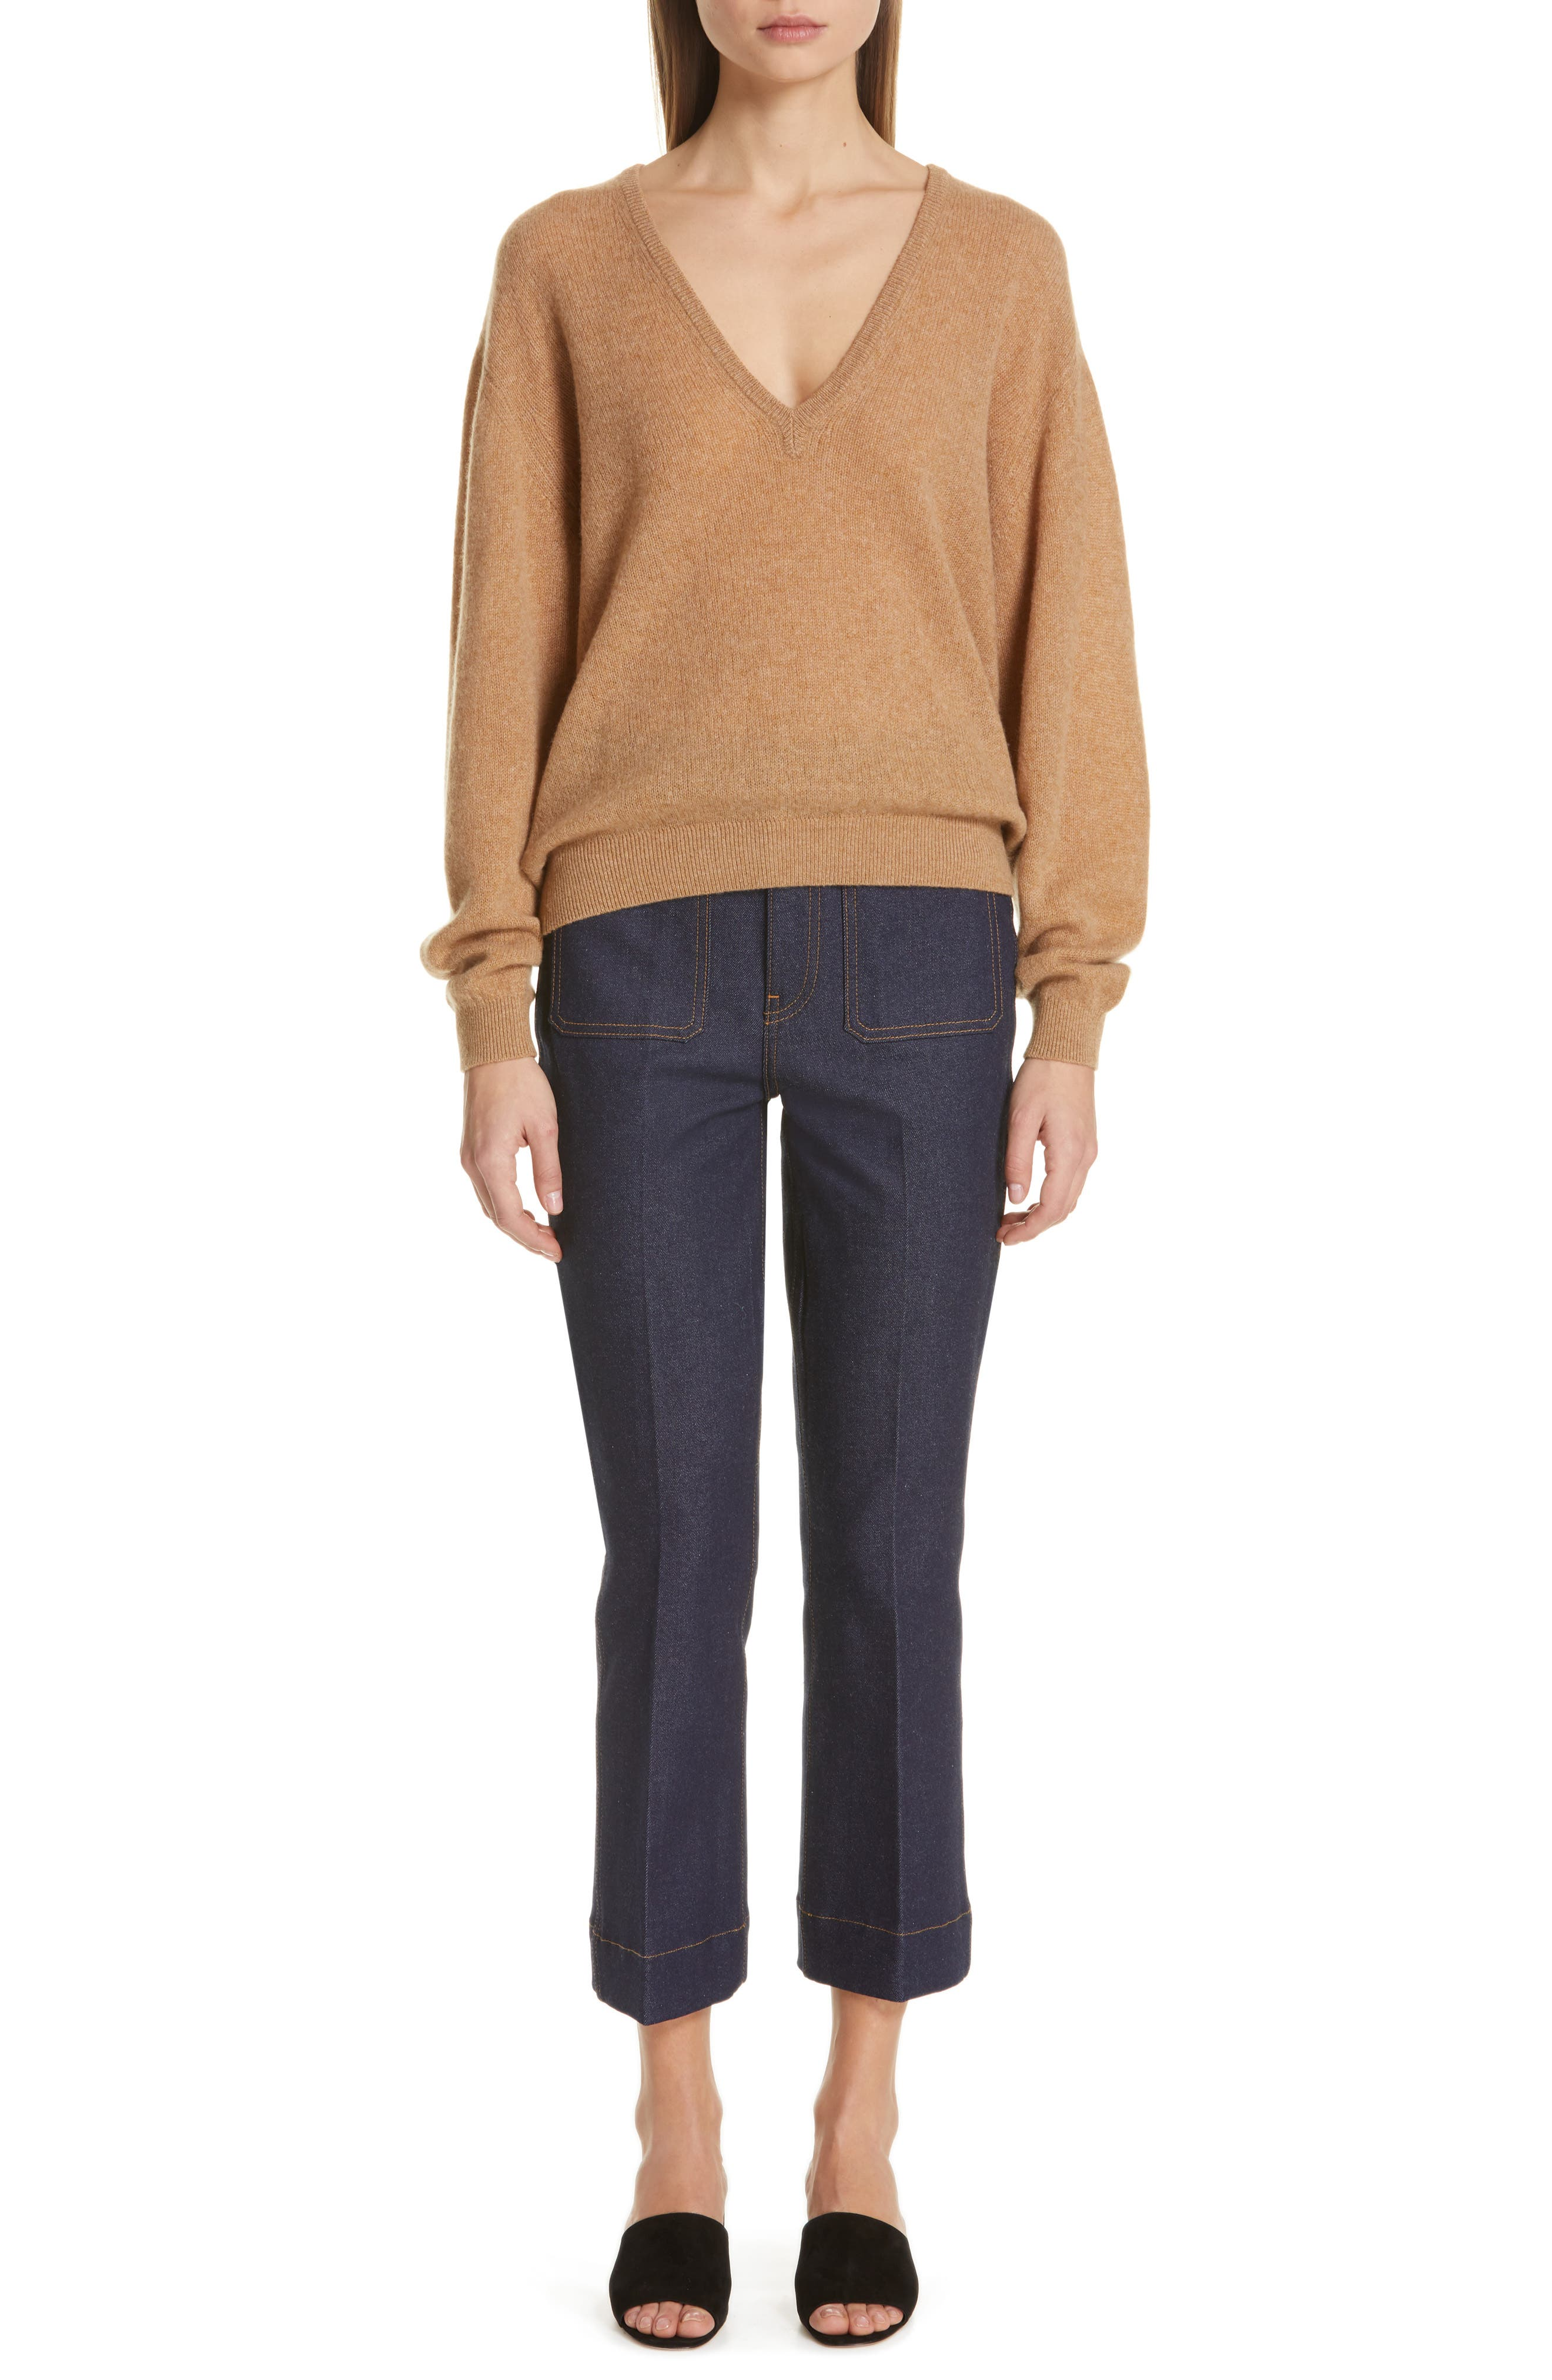 KHAITE,                             Sam Cashmere Sweater,                             Alternate thumbnail 7, color,                             CAMEL